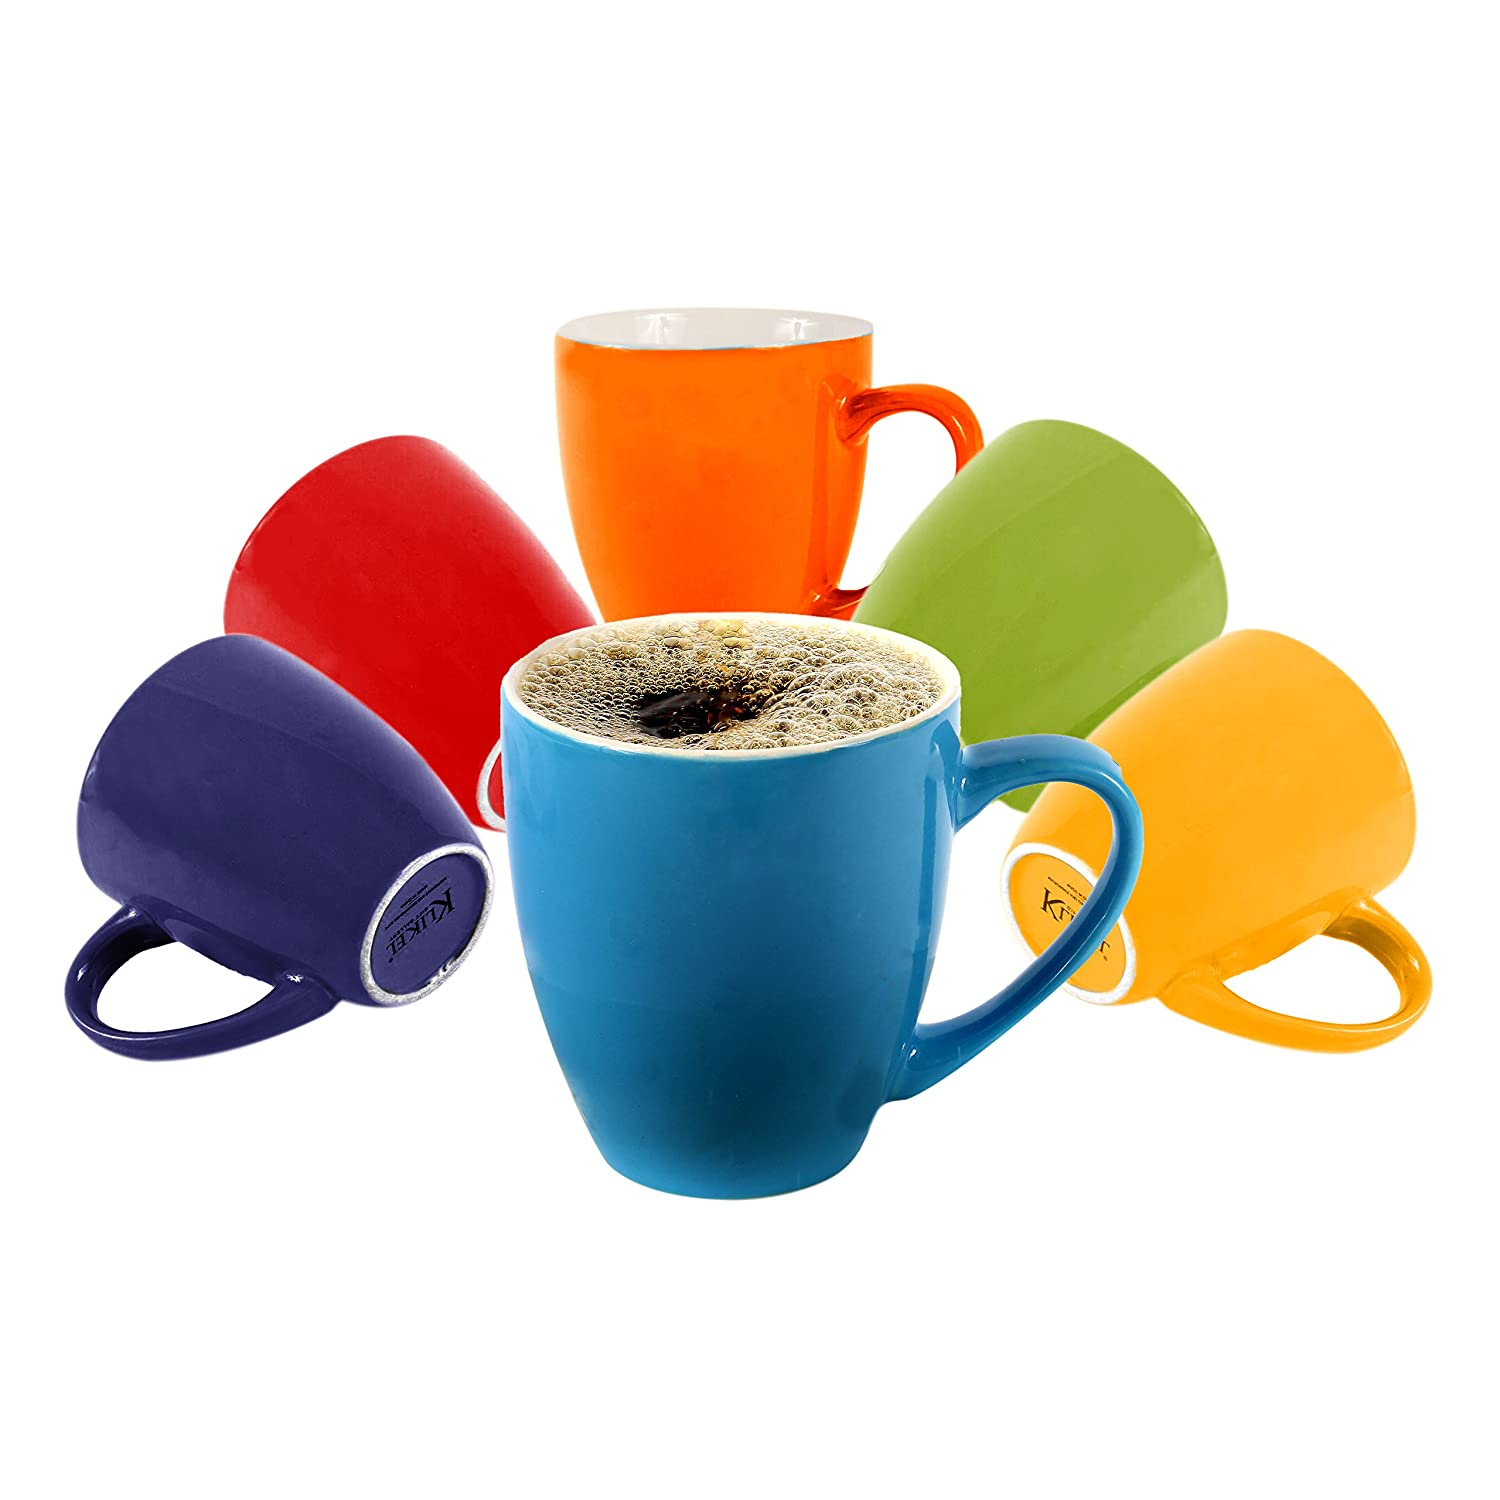 Klikel 6 Colored Coffee Mugs Set | 16oz Flat Bottom Stoneware | Bright Multi Colored